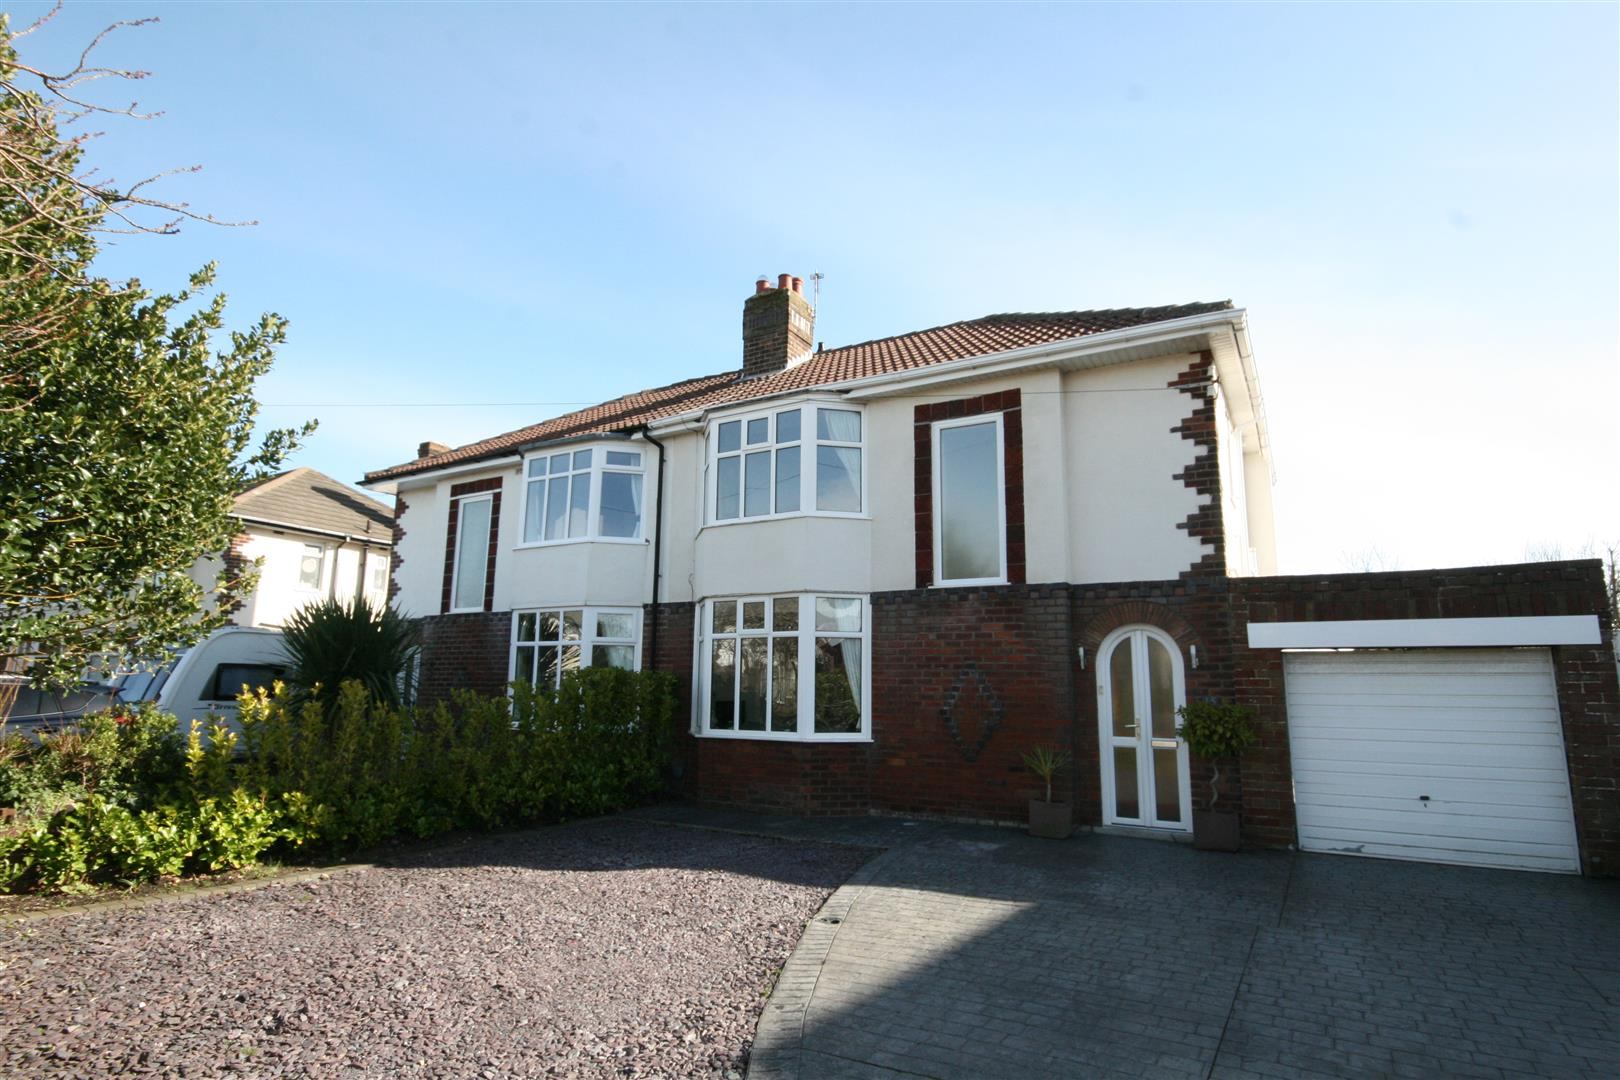 3 Bedrooms Semi Detached House for sale in Lindsay Avenue, Lytham St Annes